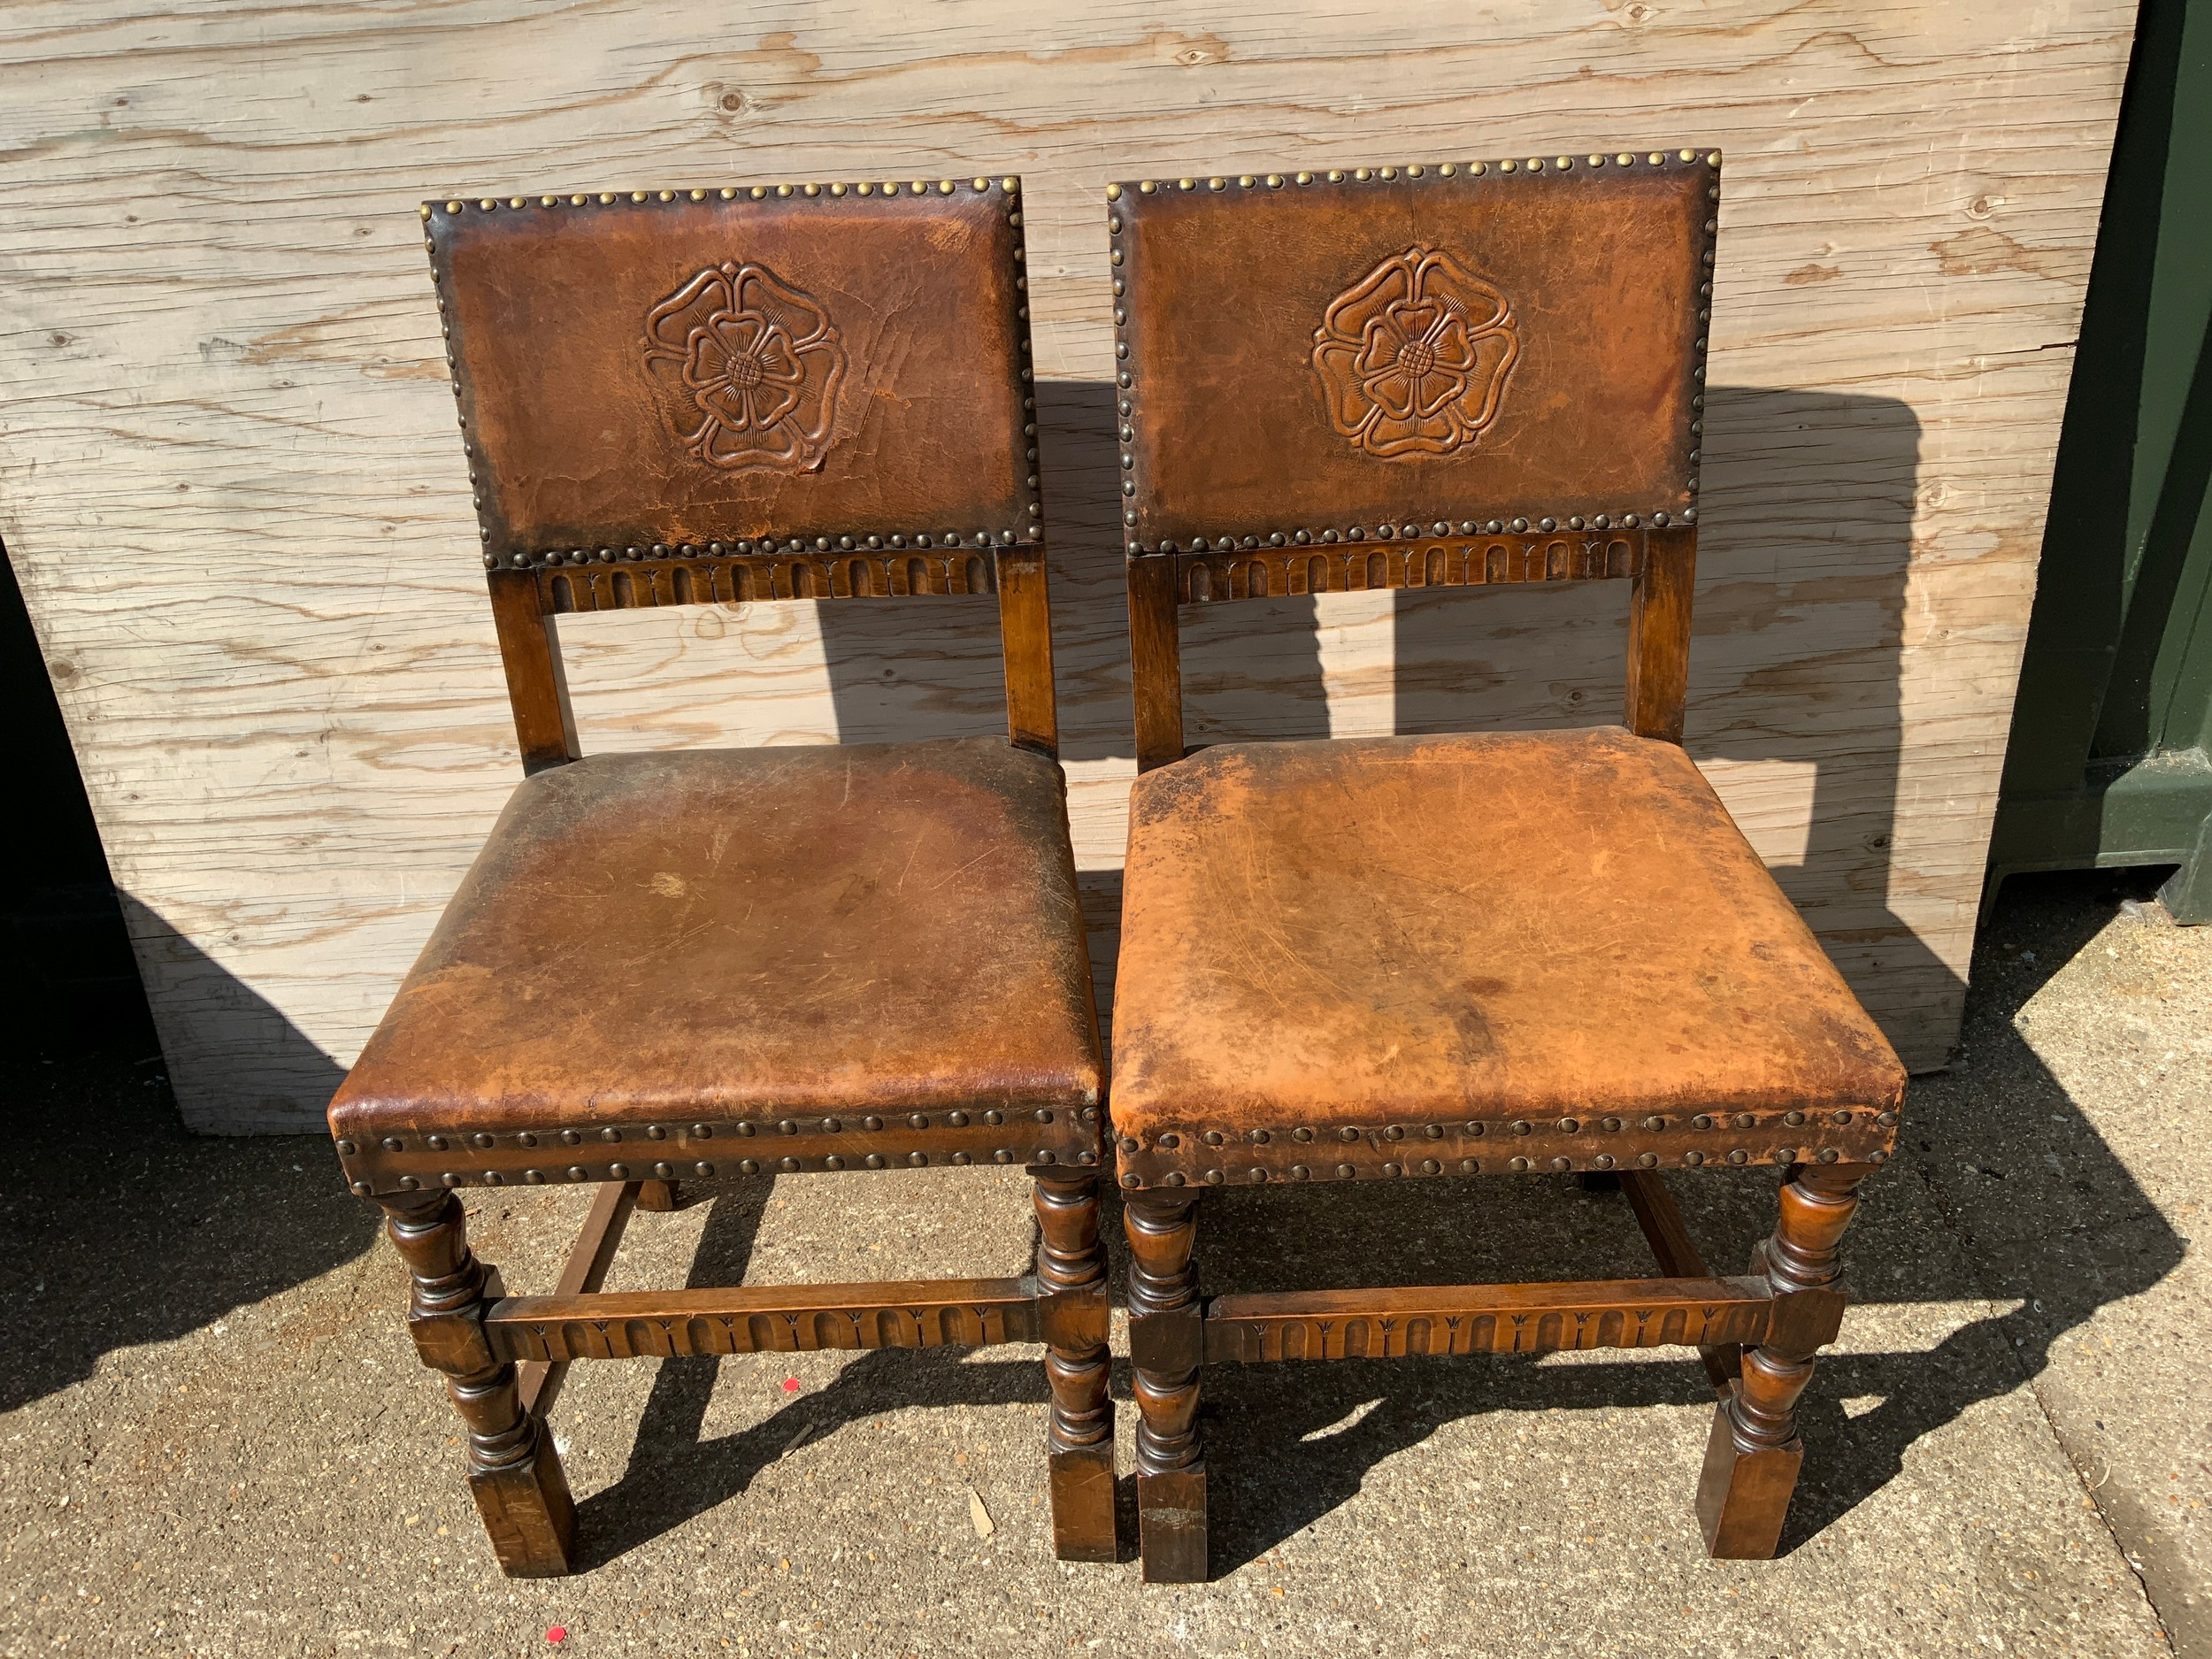 Pair of Oak Leather Covered Roseback Brass Studded Chairs